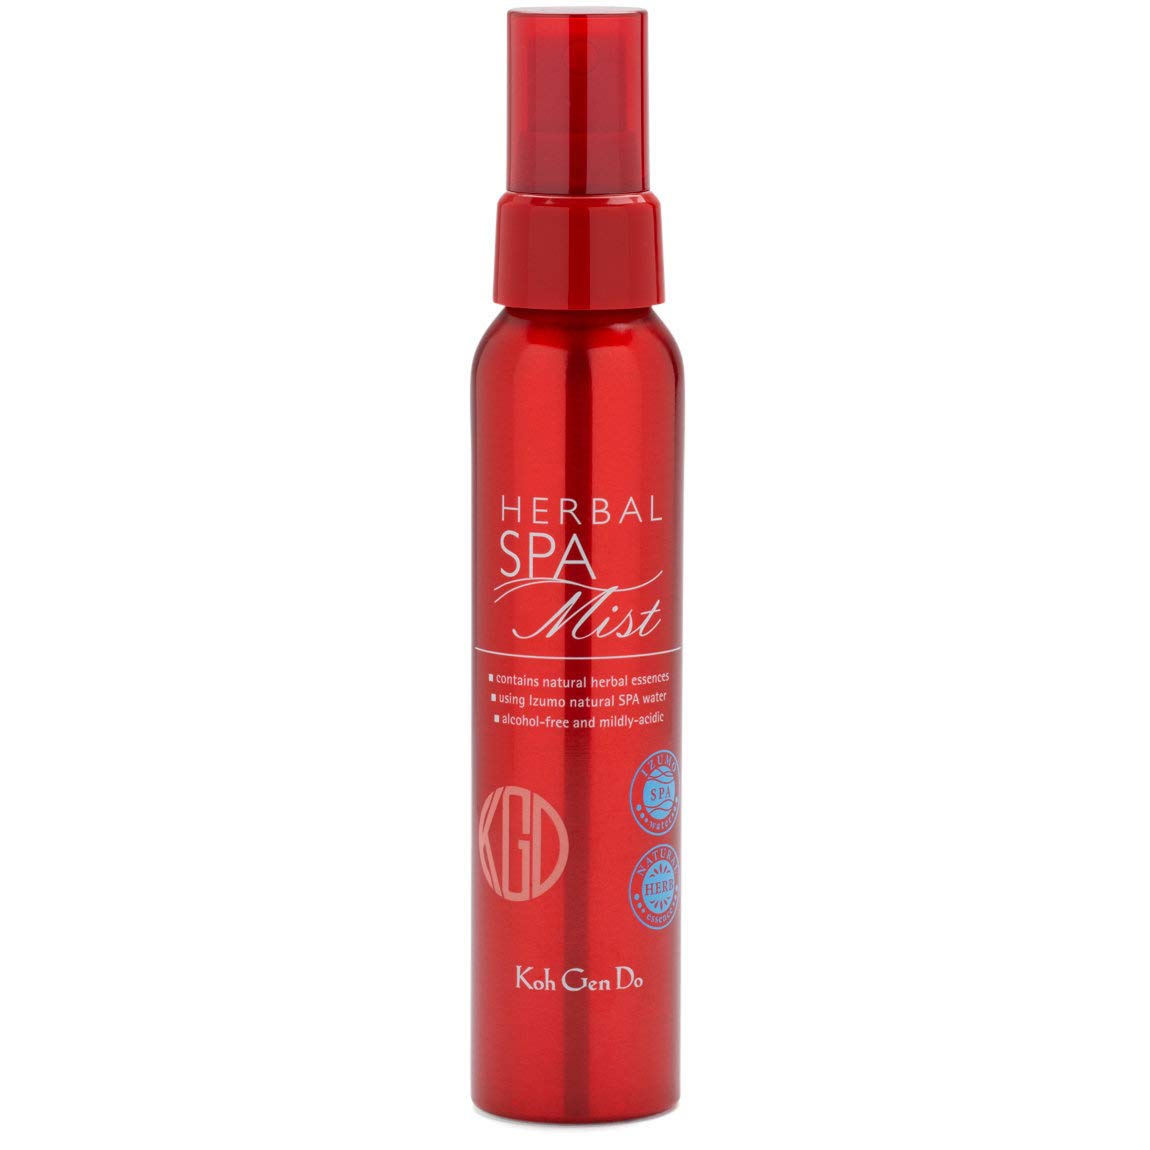 Mist Herbal Spa Water - 3.38 Oz